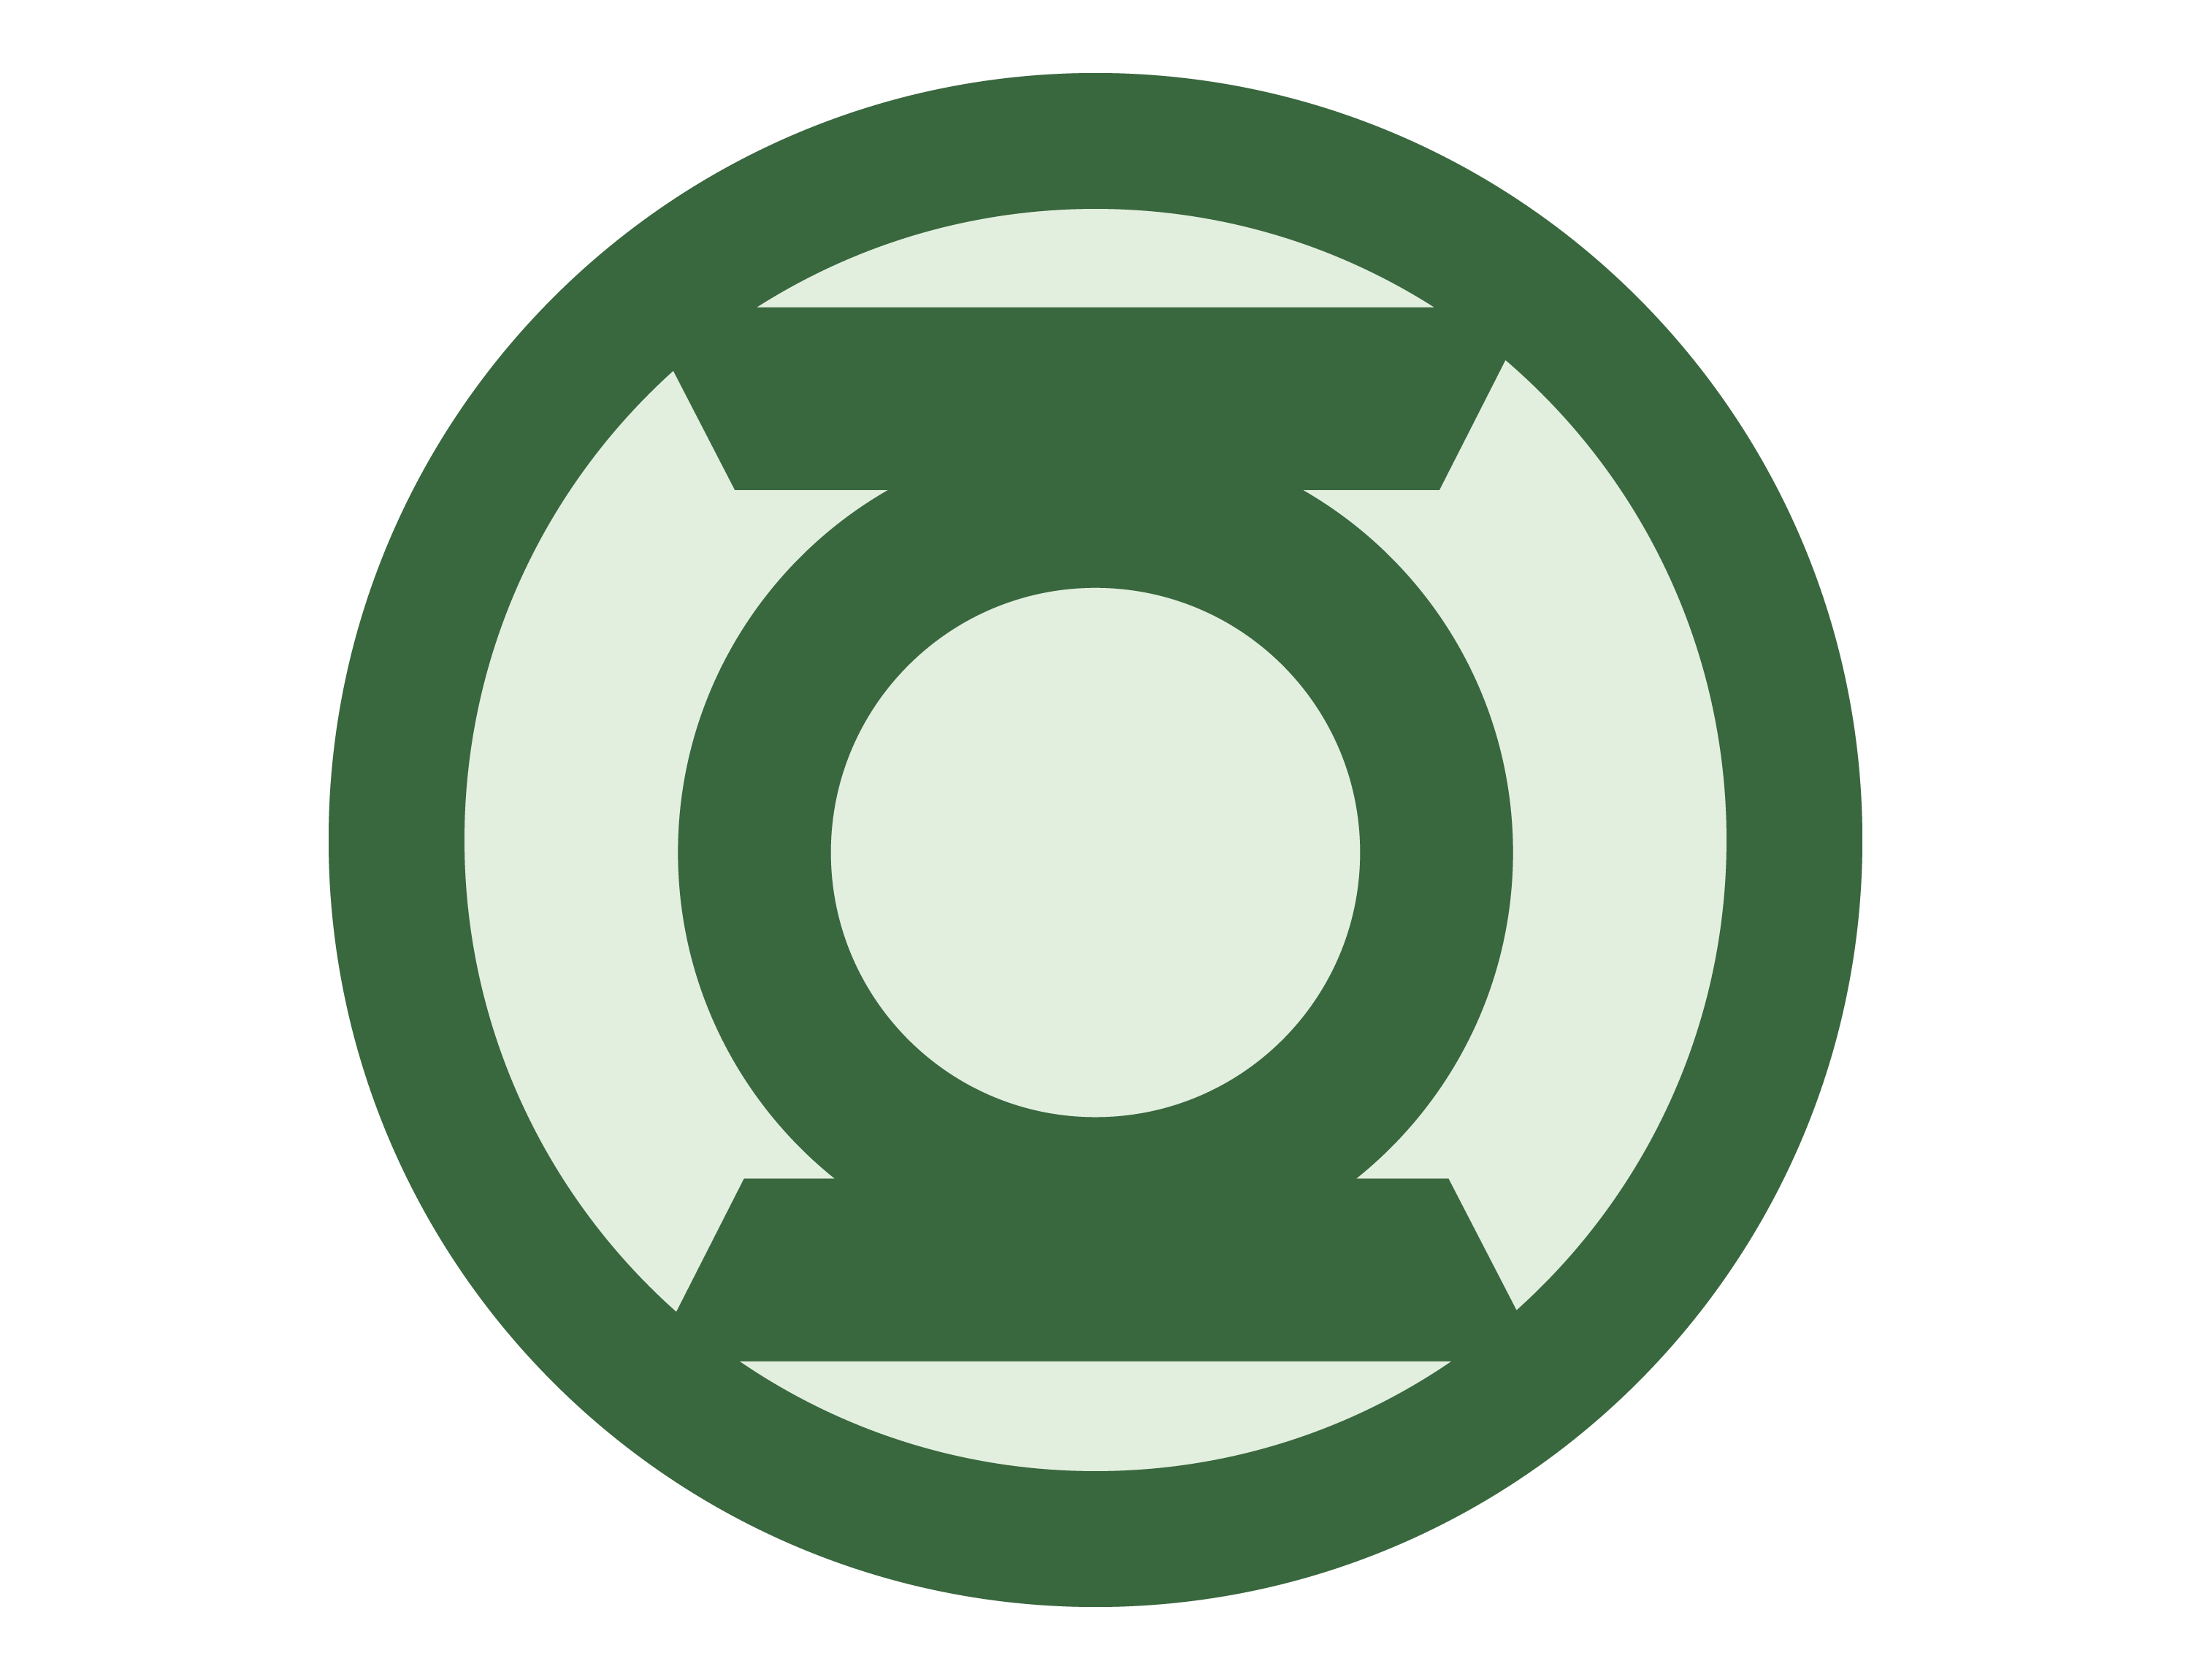 Famous Car Brands >> Green Lantern Logo, Green Lantern Symbol, Meaning, History and Evolution